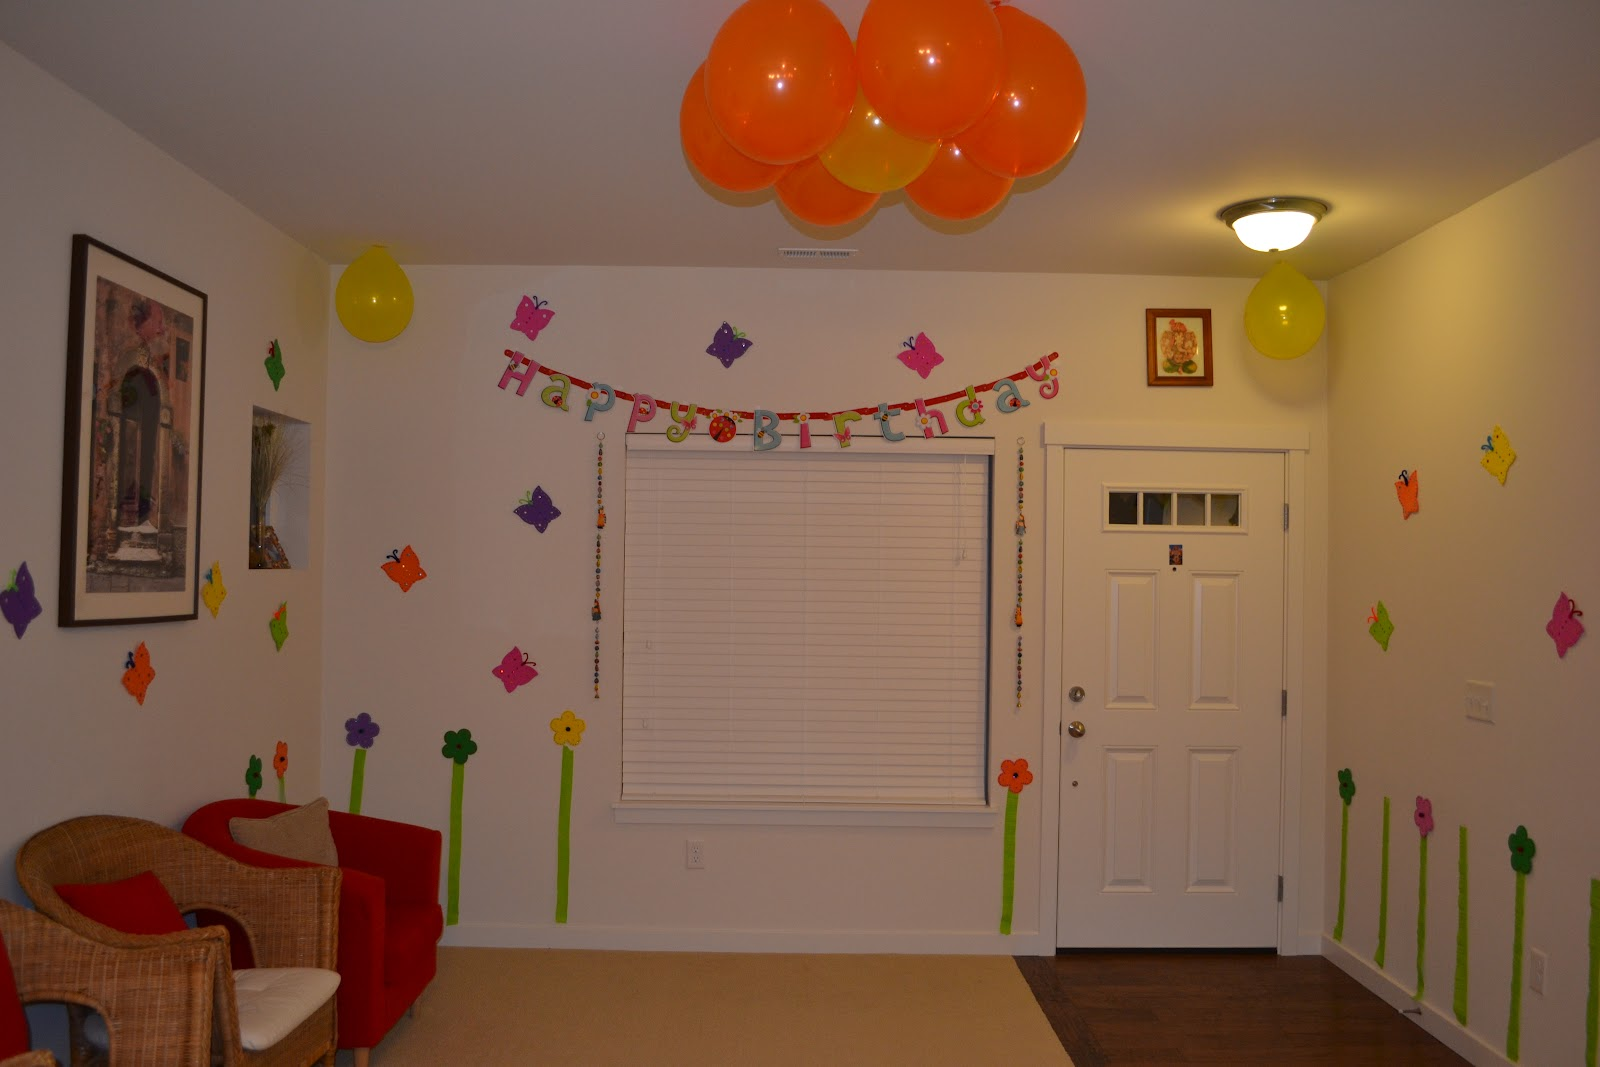 Home kids and crafts butterflies and bugs 6th birthday party for Welcome home decorations ideas